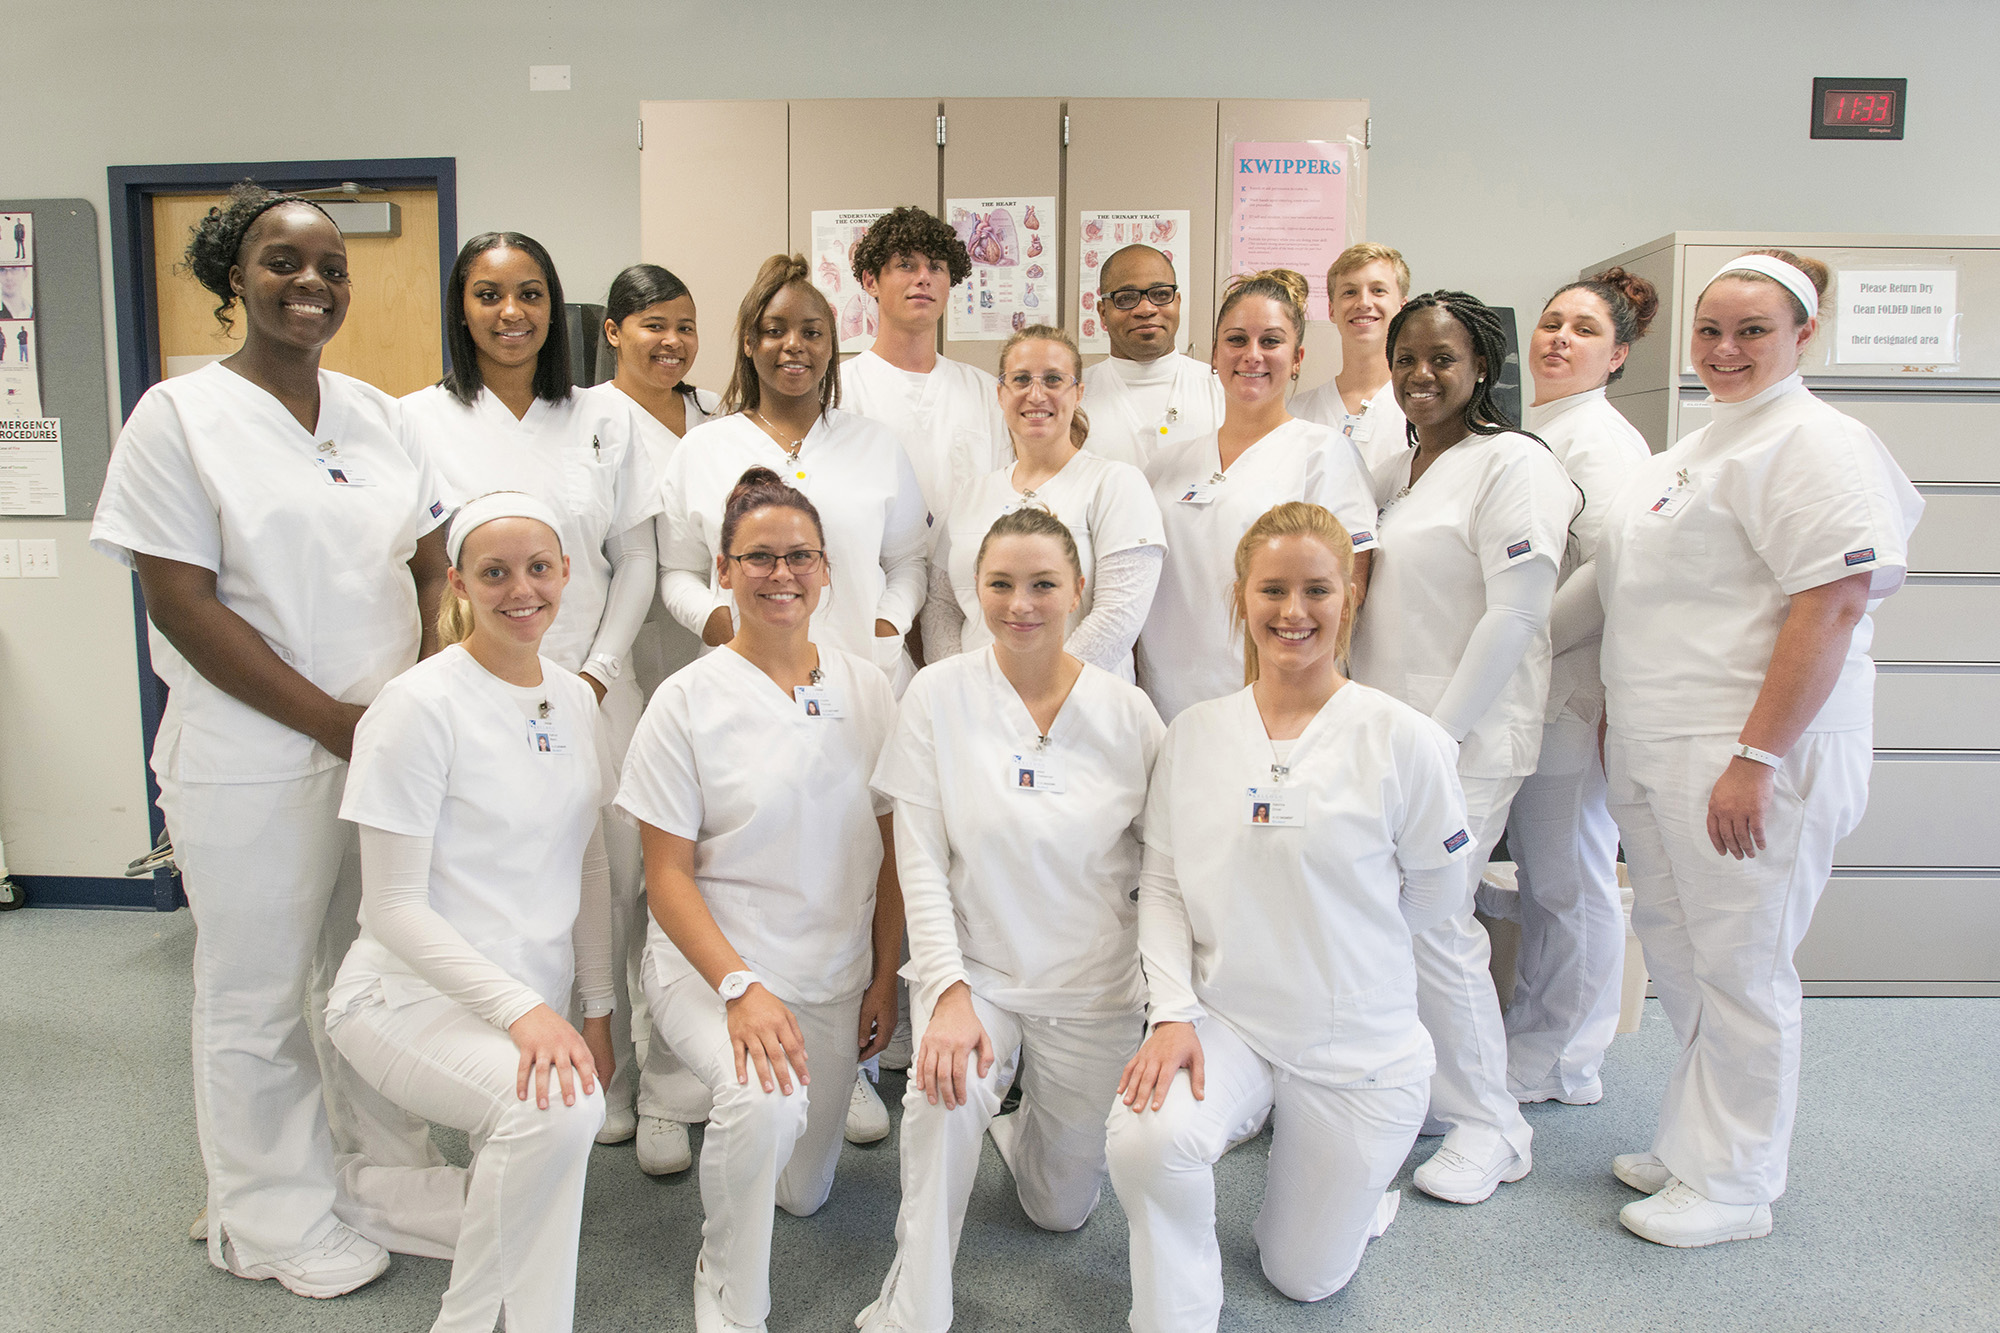 A group photo of CNA Program graduates posing in the CNA Lab.